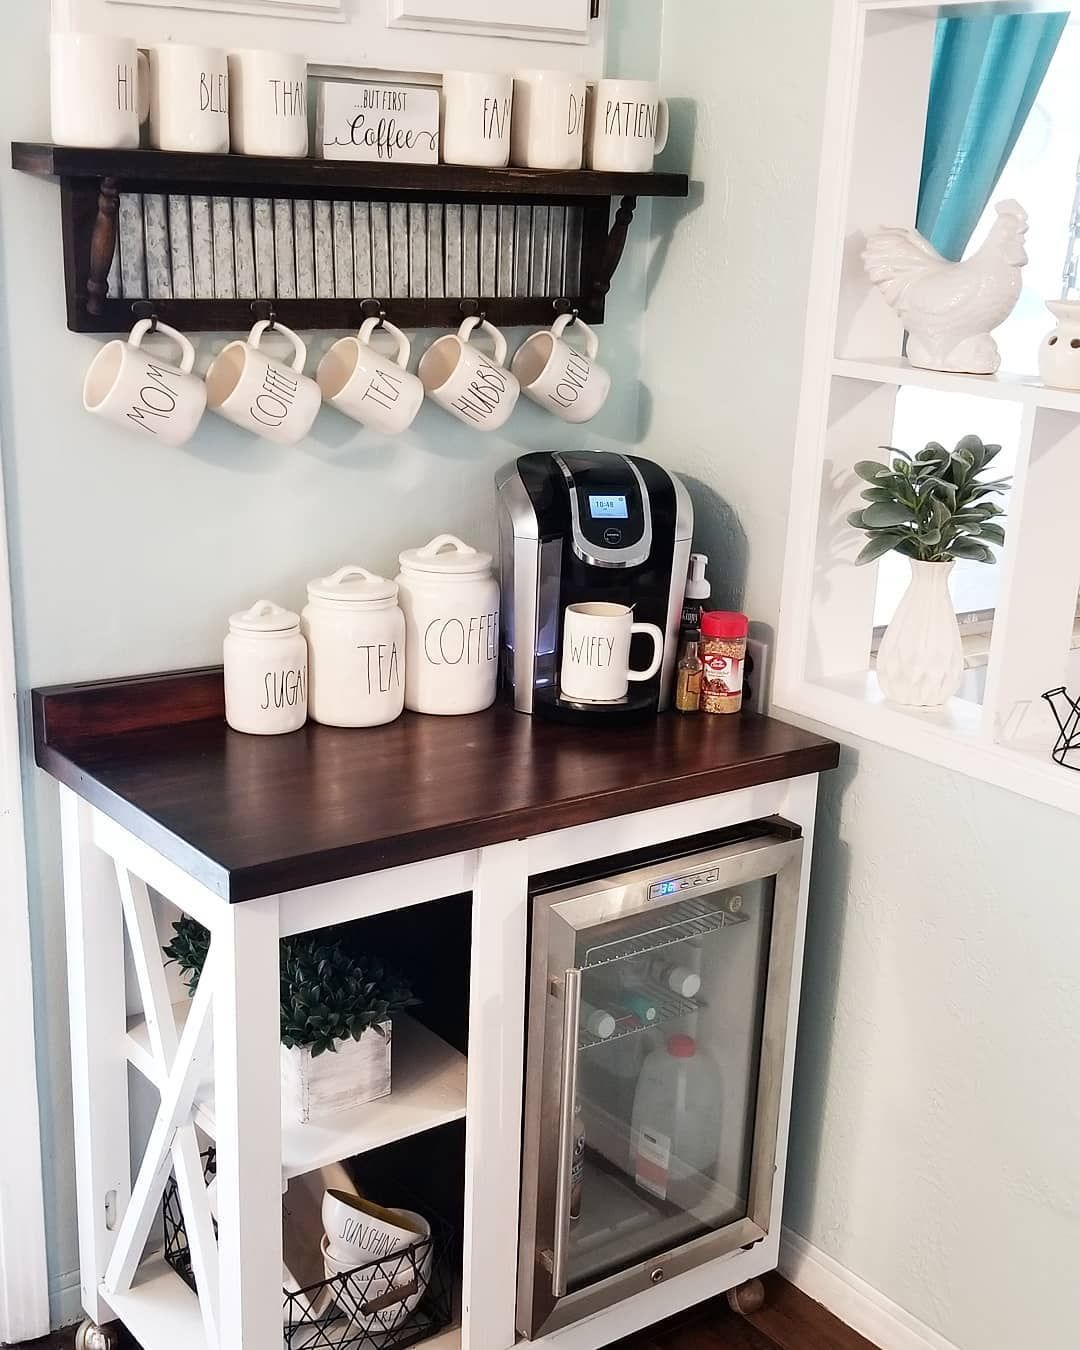 27 Diy Coffee Station Ideas For Your Mood Buzz How To Make Your Own Coffee Bar Home Home Coffee Stations Coffee Bars In Kitchen